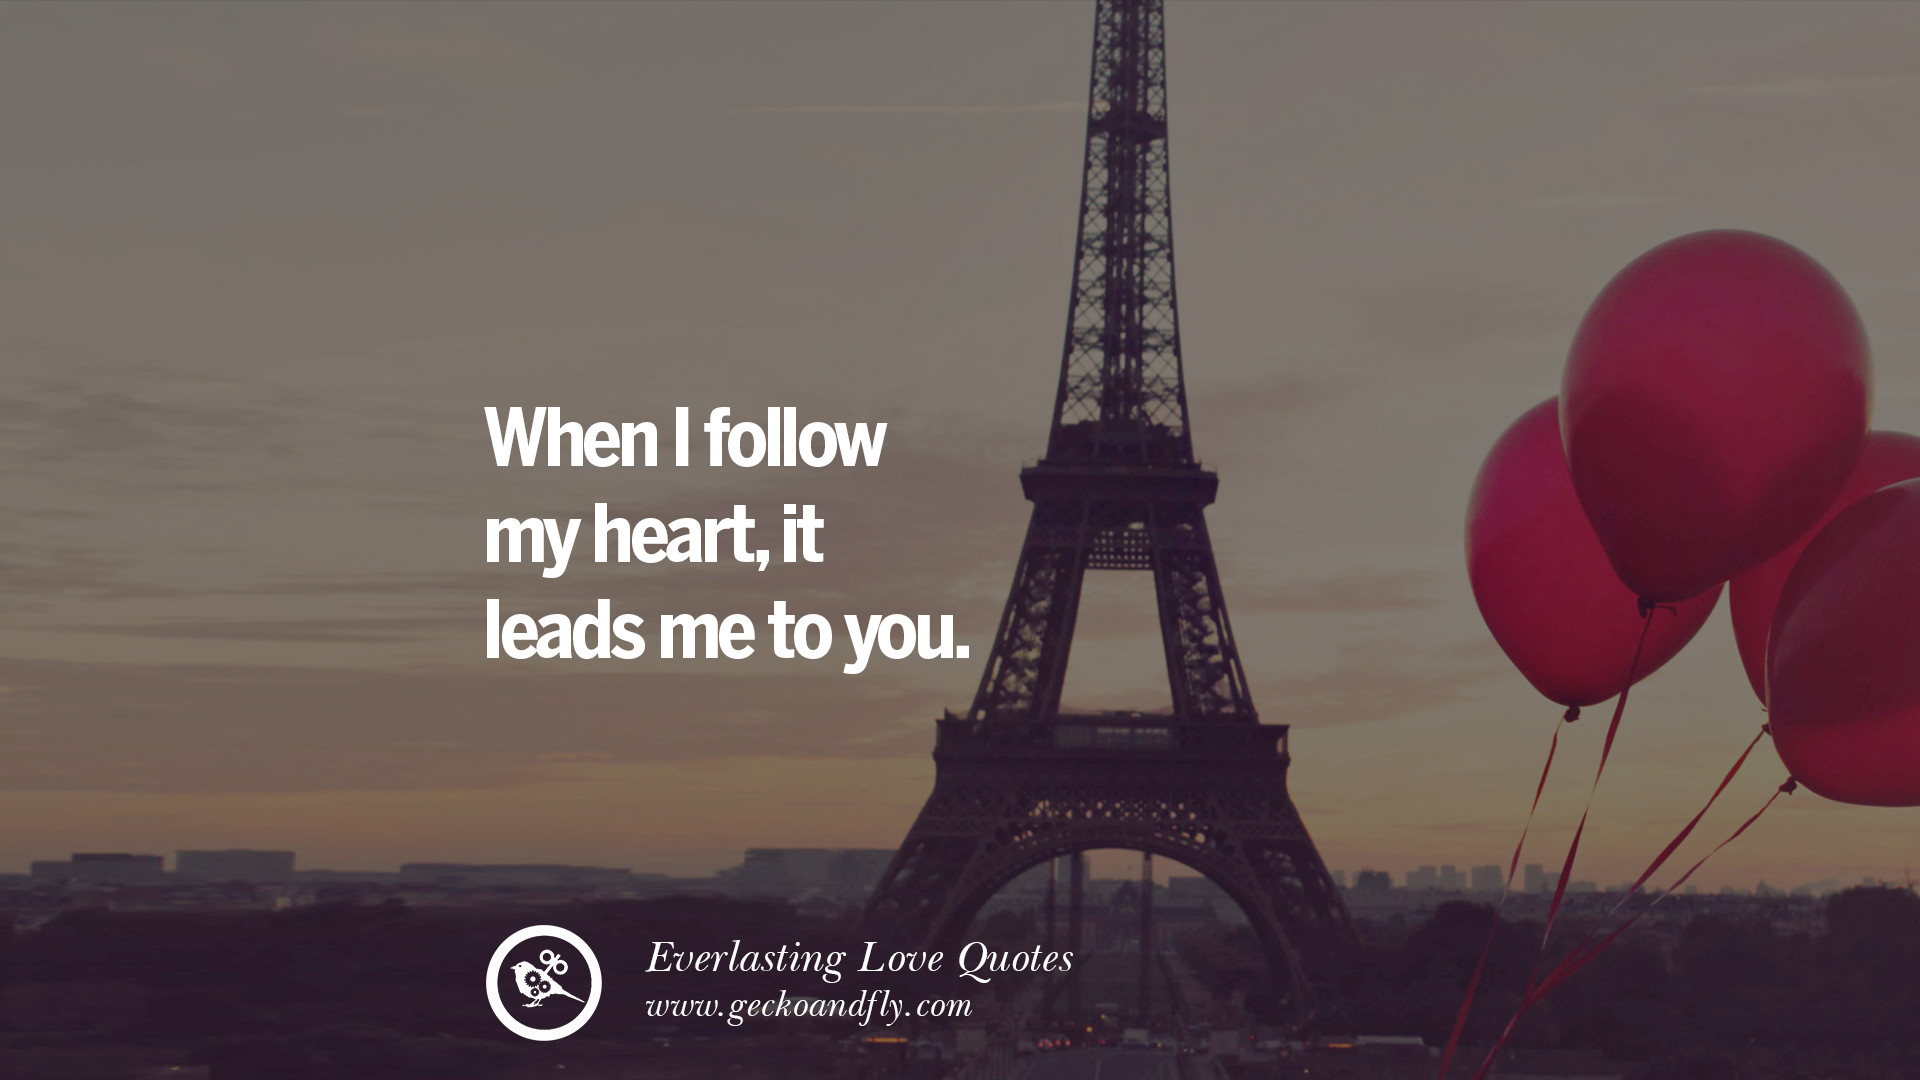 Fall In Love With Me Wallpaper 18 Romantic Love Quotes For Him And Her On Valentine Day